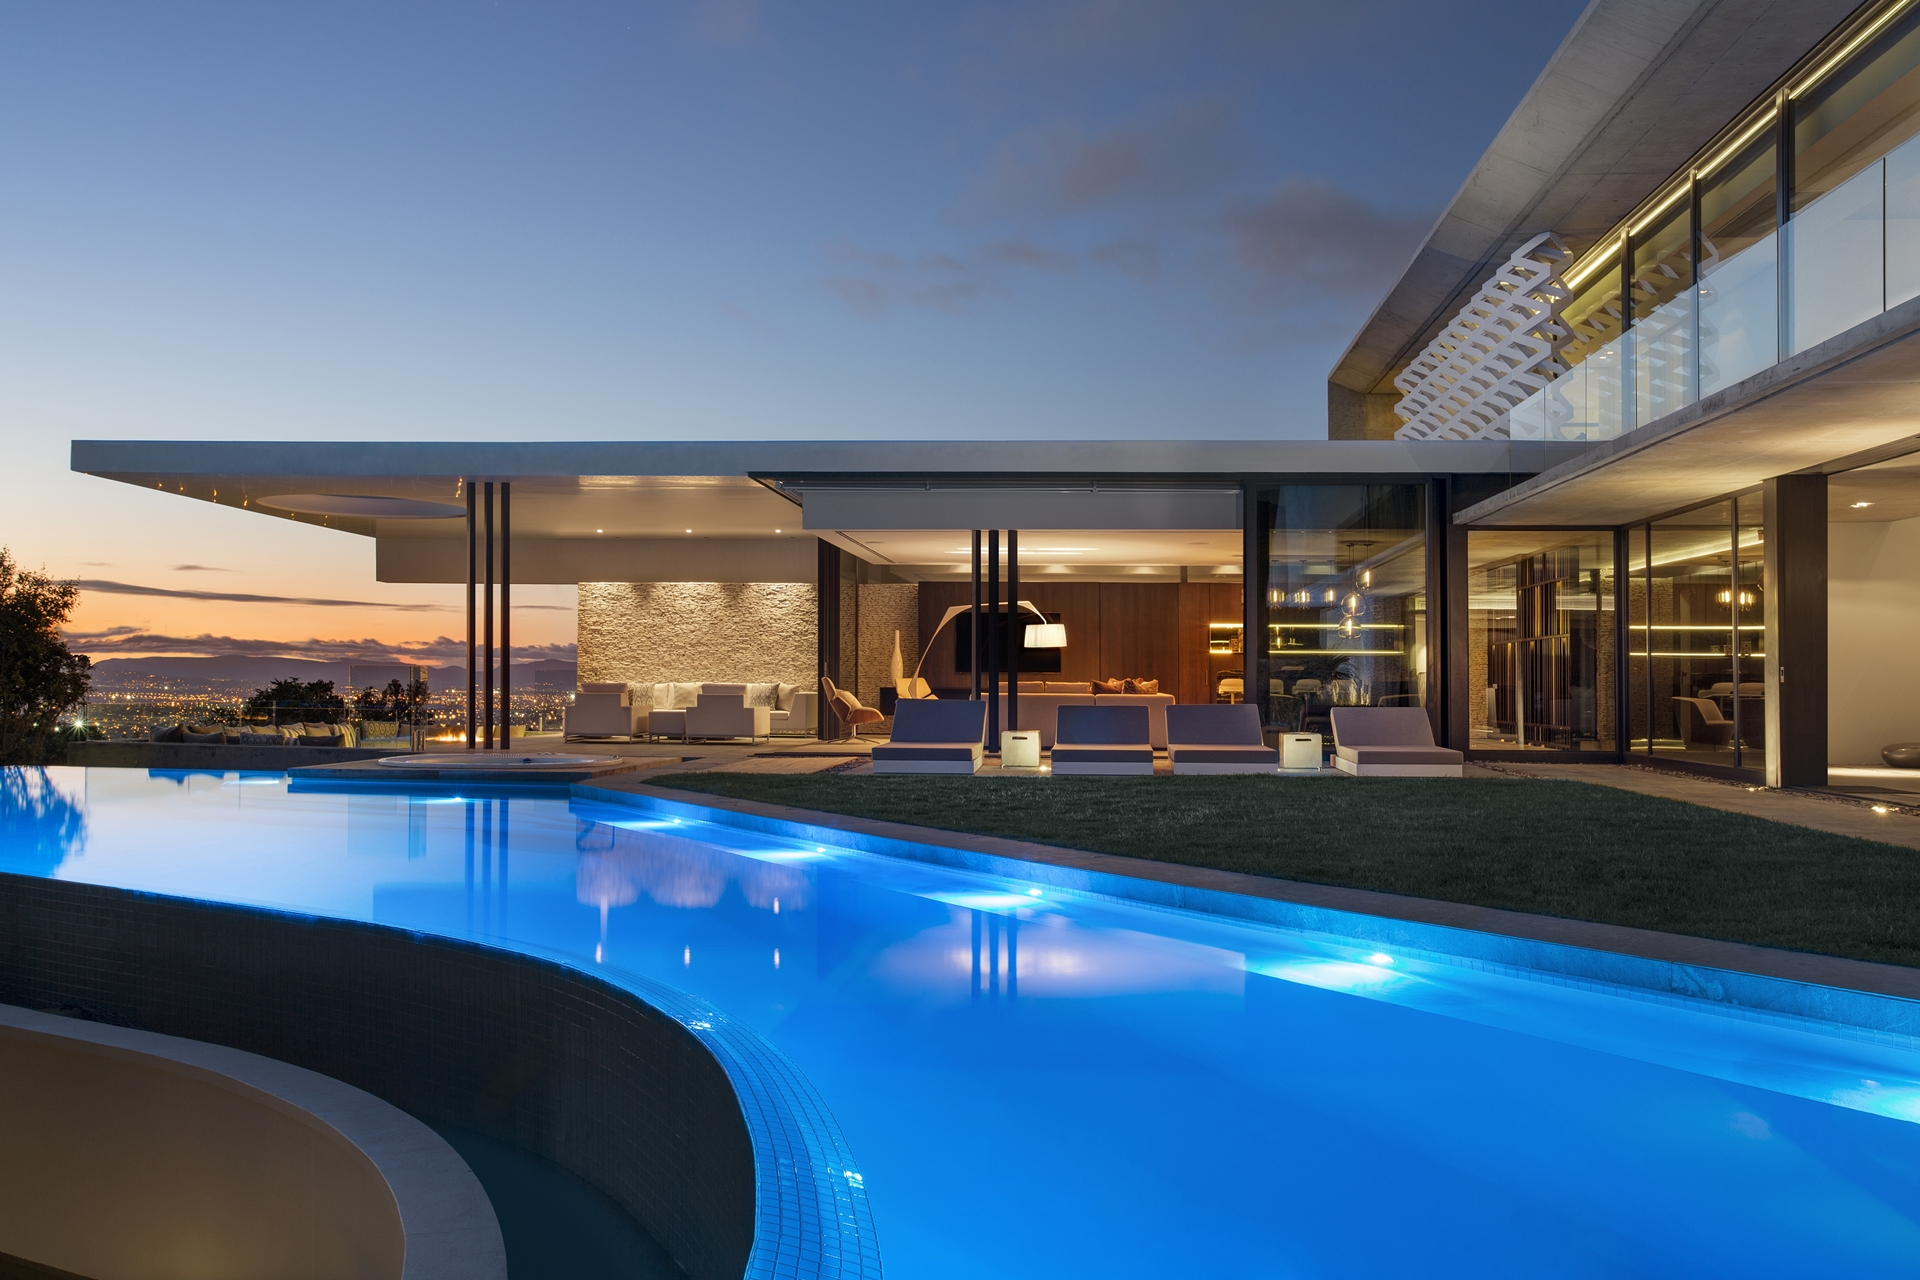 Concrete and glass house modern city villa by arrcc for Pool design for villa